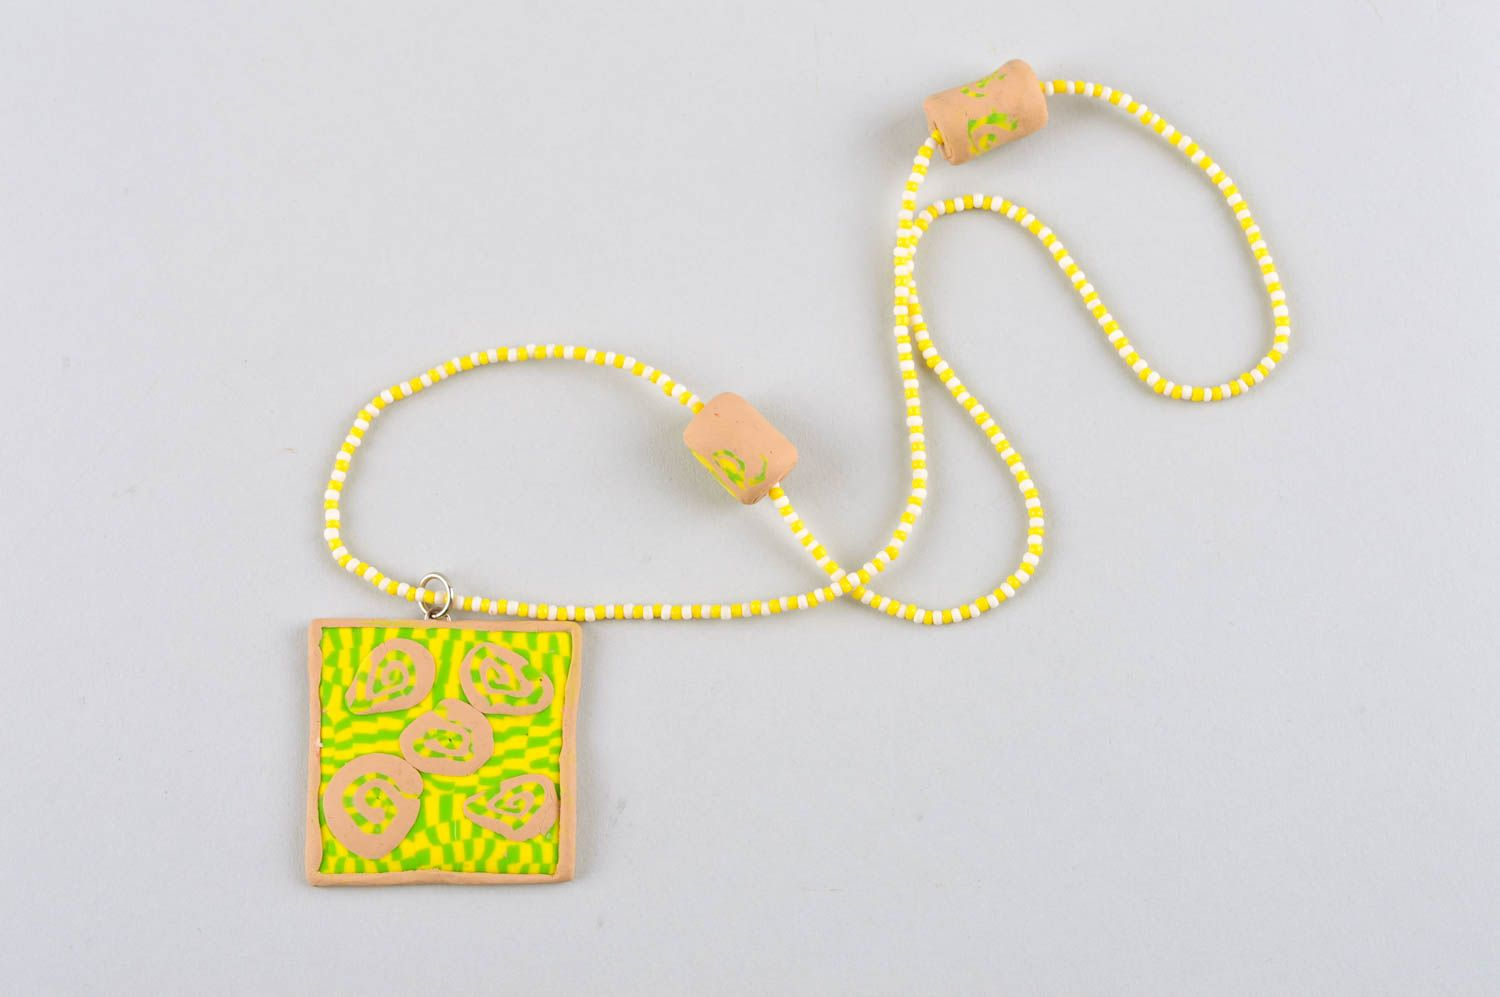 Polymer clay pendant necklace handmade charm necklace gift ideas for women  photo 4